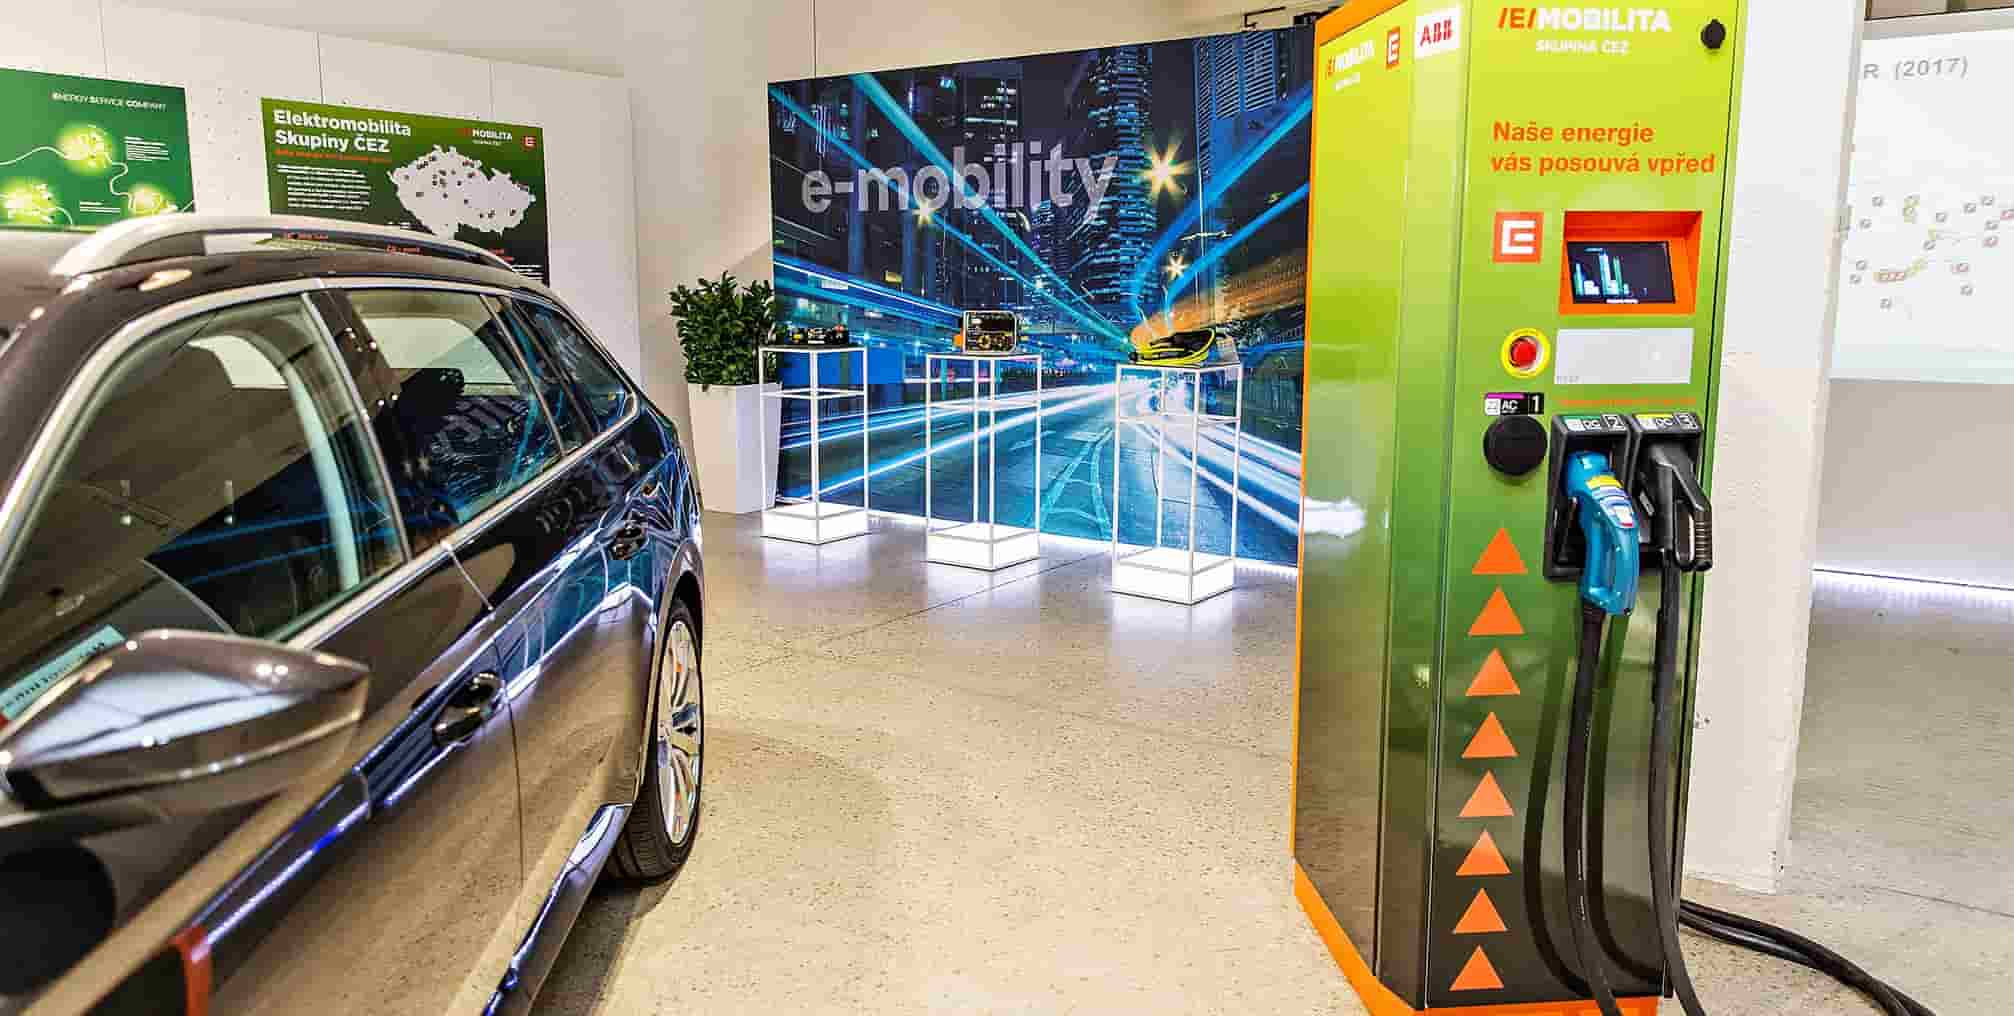 E-mobility CEZ - in article